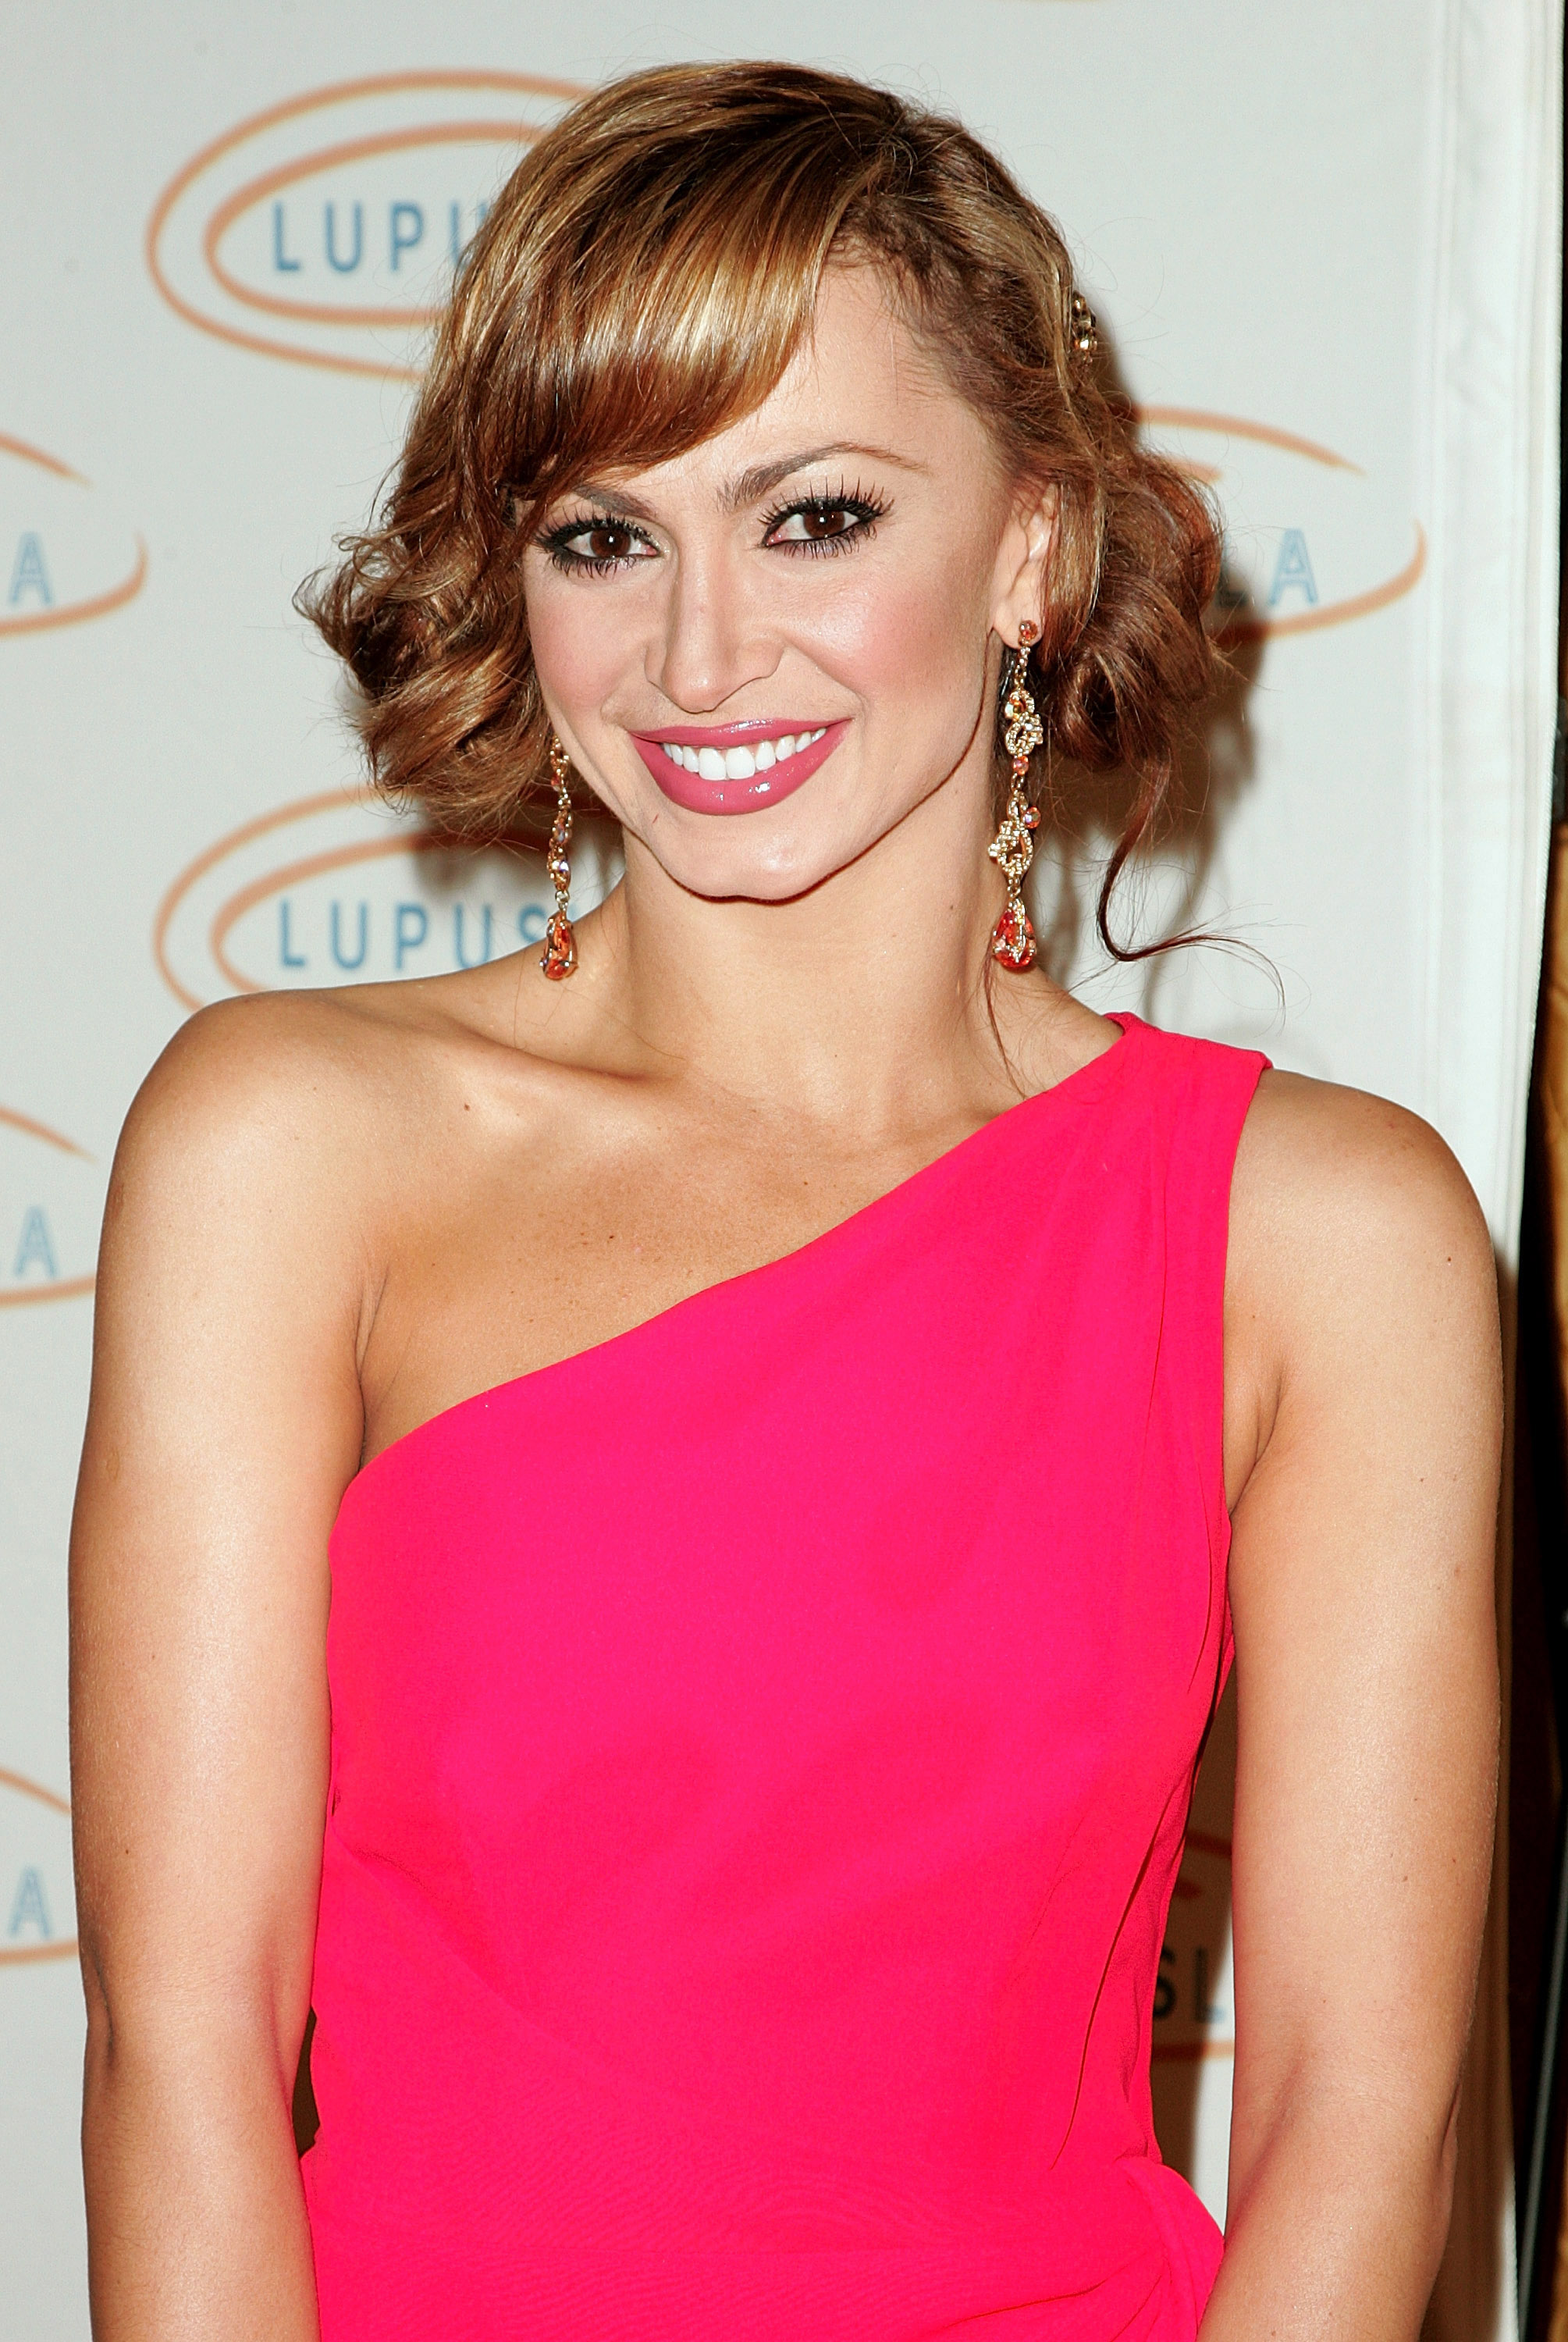 30396_Karina_Smirnoff_2008-11-07_-_Lupus_LA3s_Sixth_Annual_Hollywood_Bag_Ladies_Luncheon_in_Beverly_H_0187_122_595lo.jpg